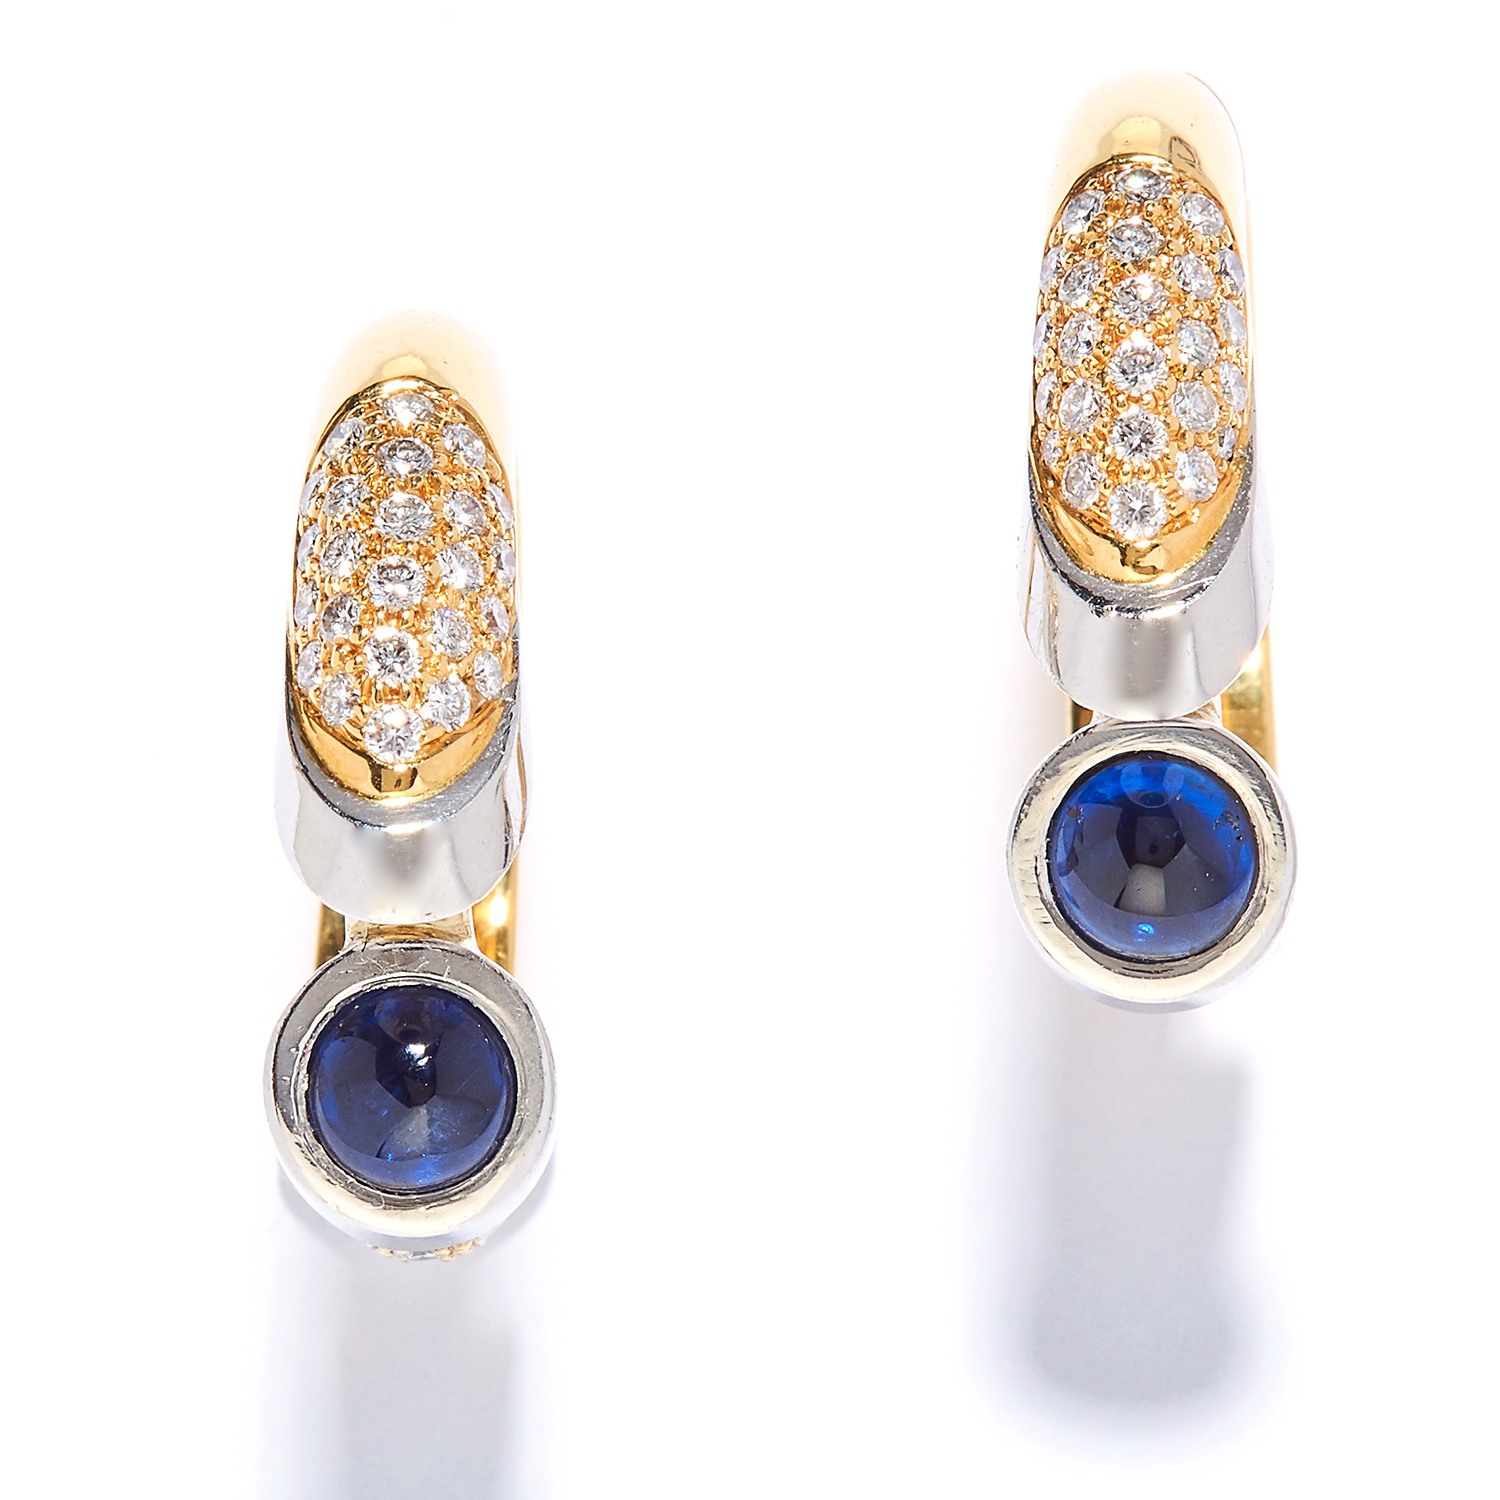 A PAIR OF SAPPHIRE AND DIAMOND HOOP EARRINGS in yellow gold, each set with a cabochon sapphire and